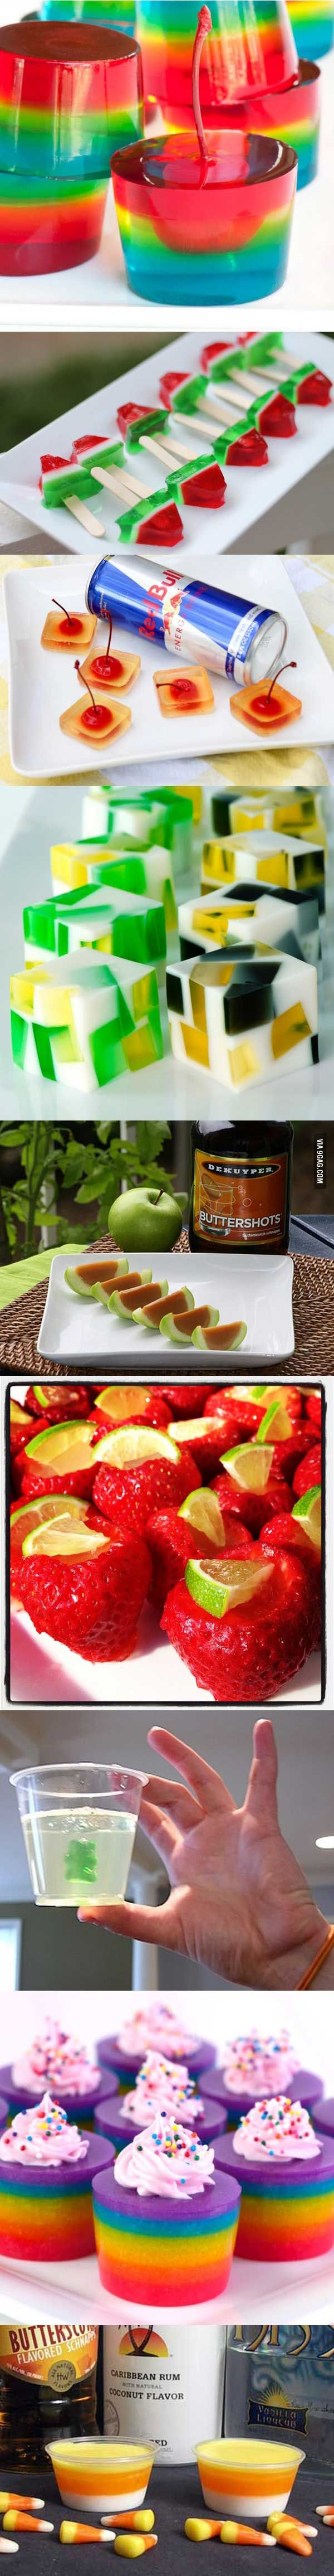 10 different ways to do jello shots, this is amazing!